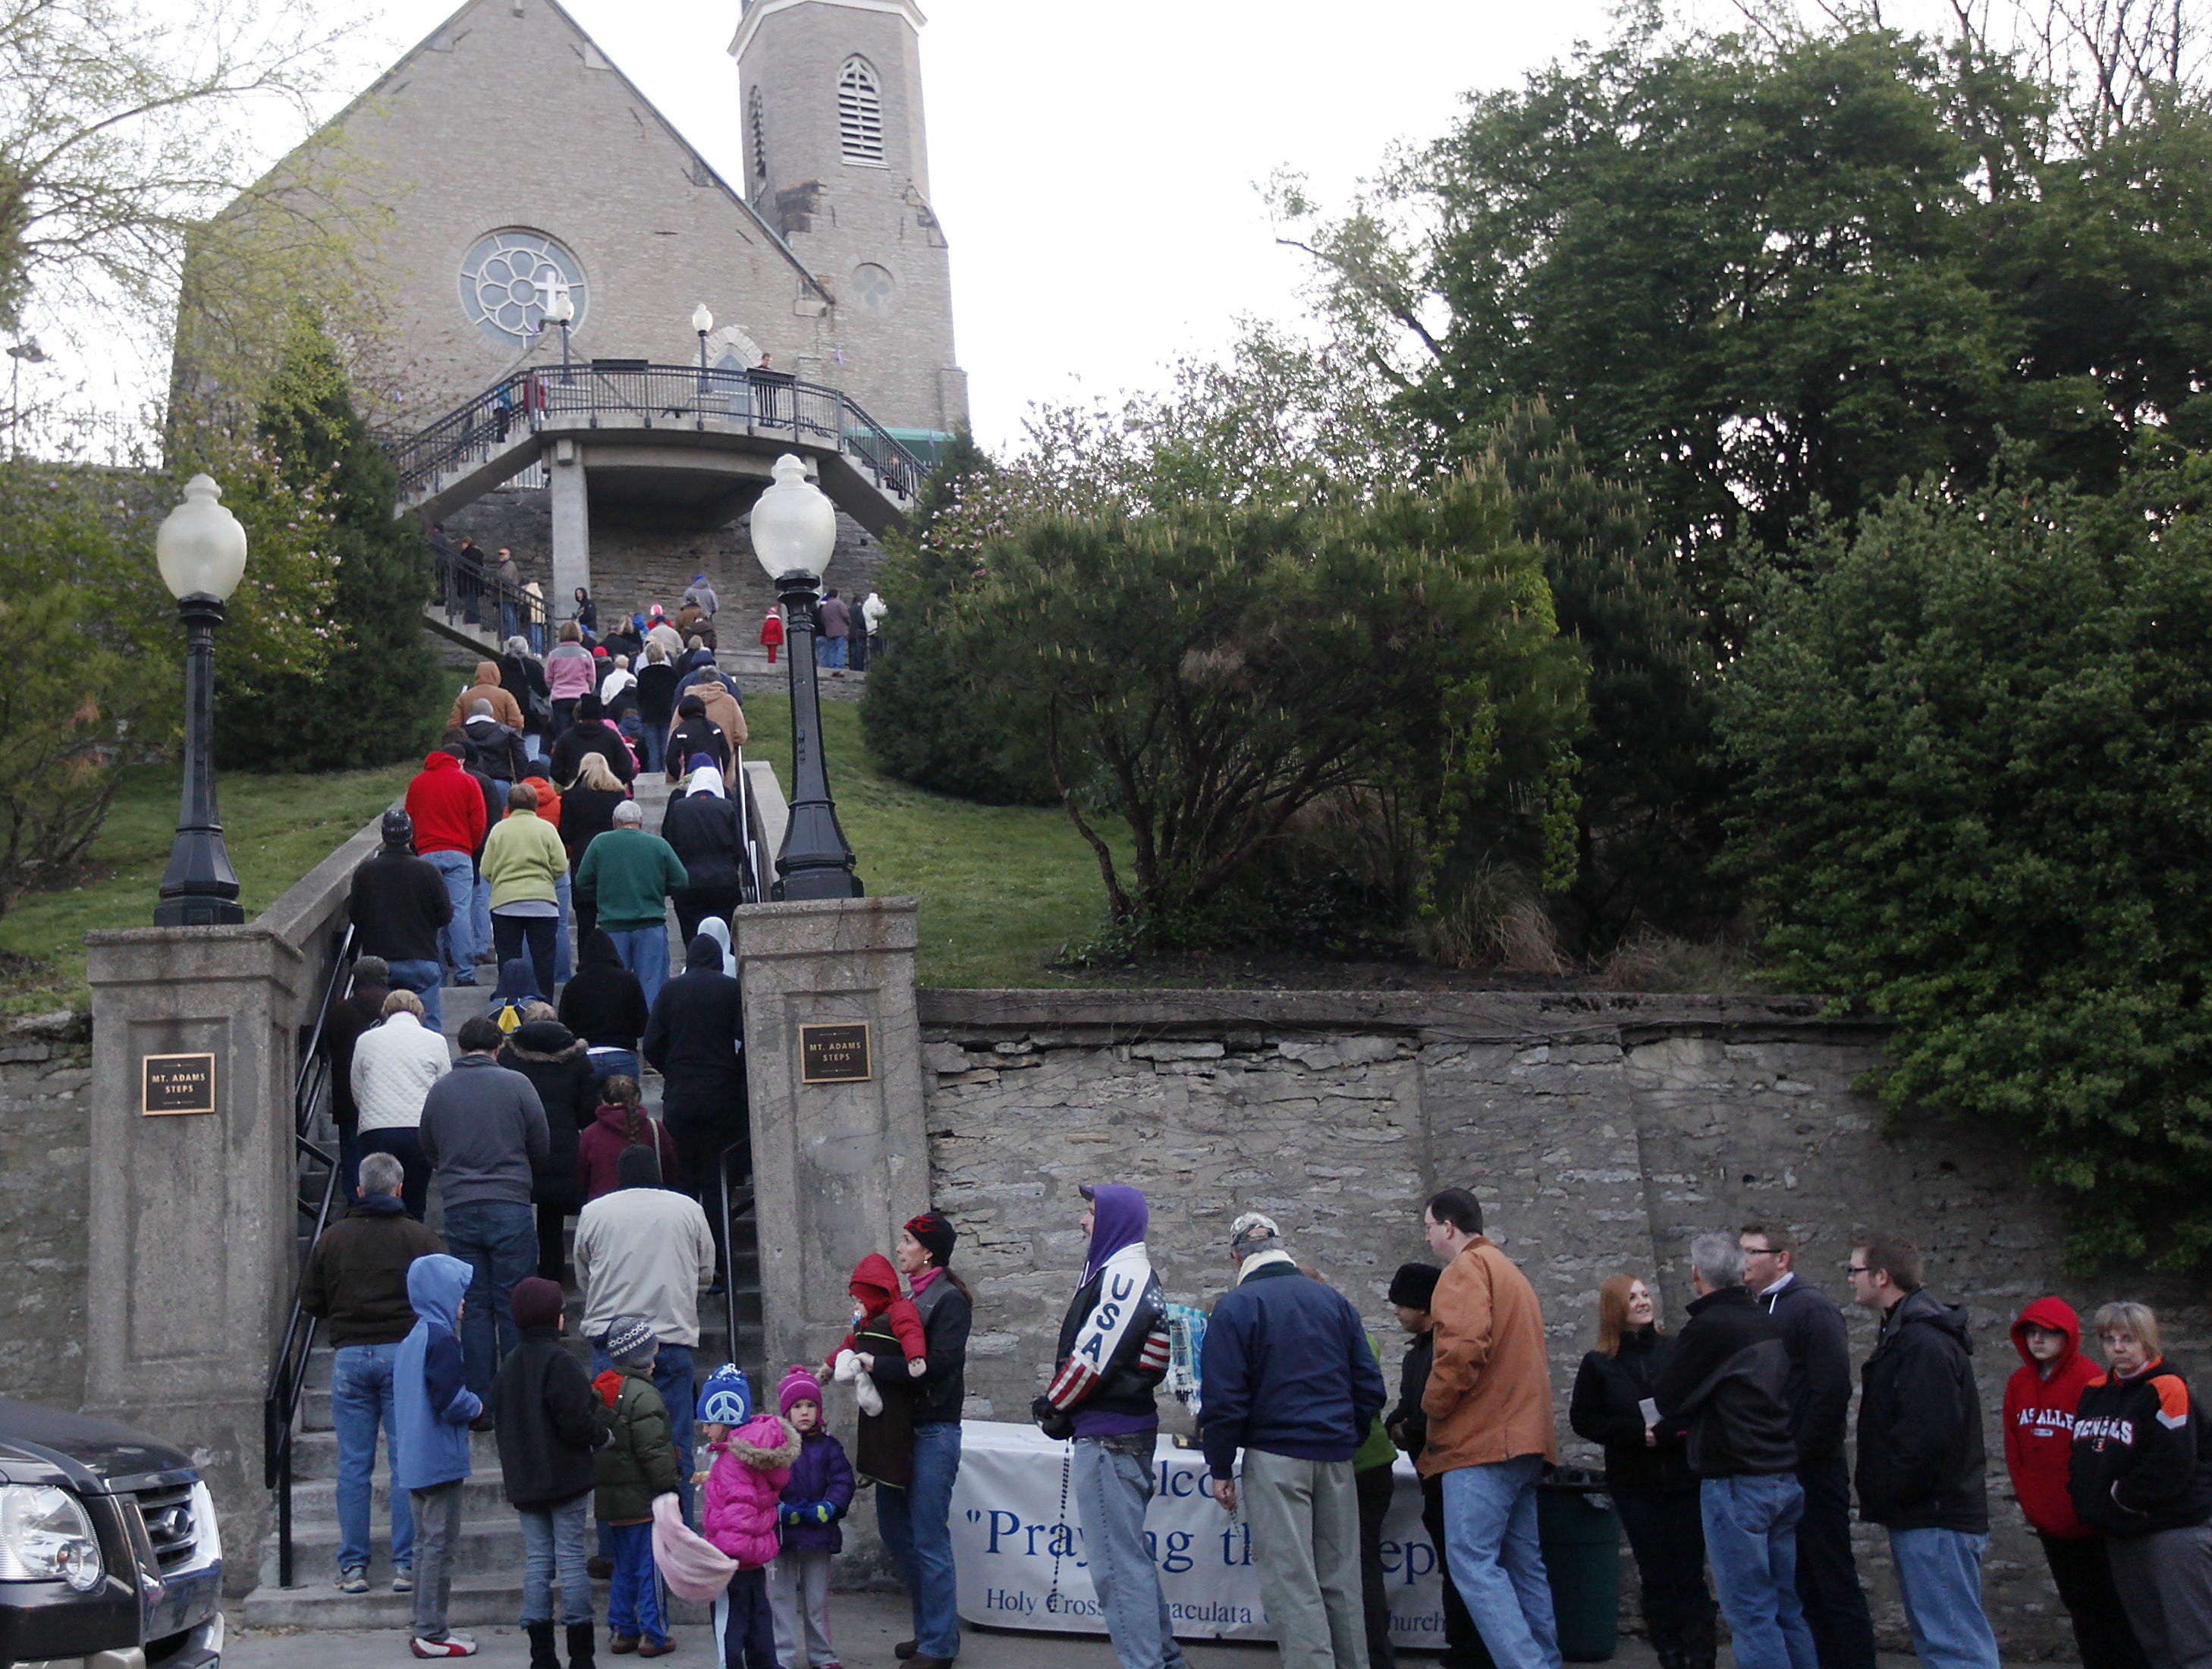 People form a line to pray the steps on Good Friday at the Holy Cross-Immaculata Church in Mount Adams on April 6, 2012.